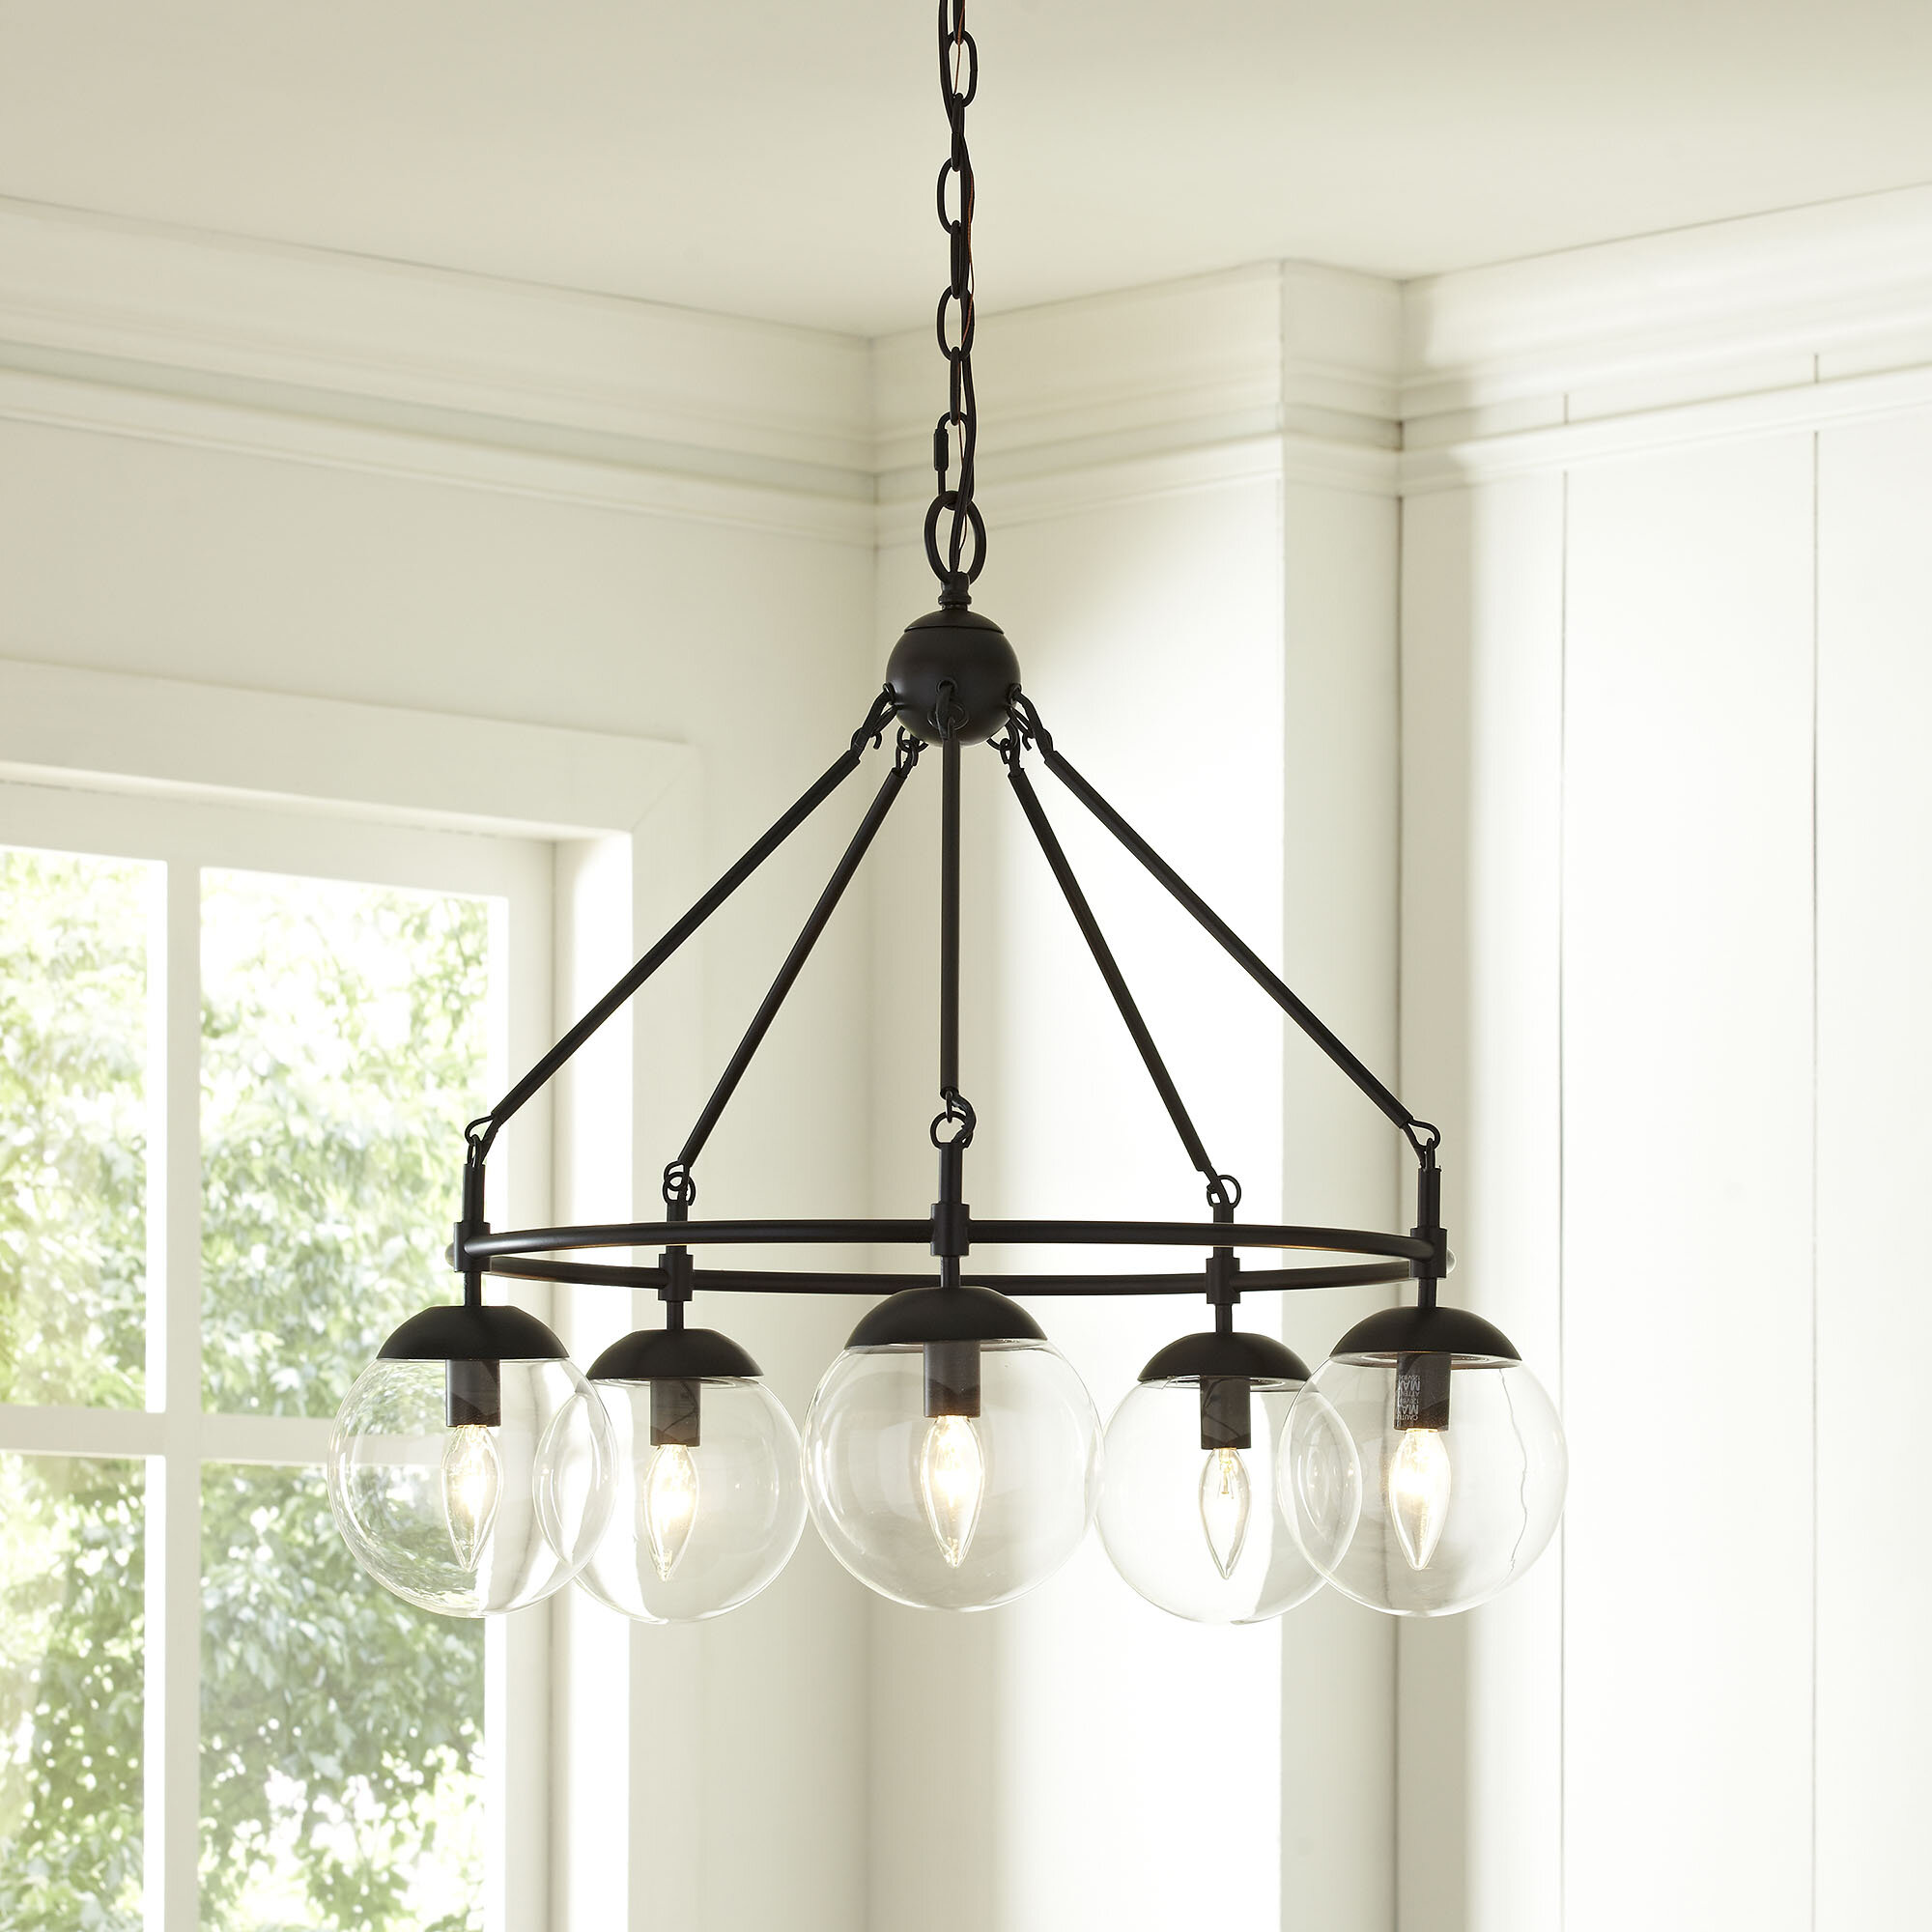 Cranston 5 Light Candle Style Chandelier & Reviews